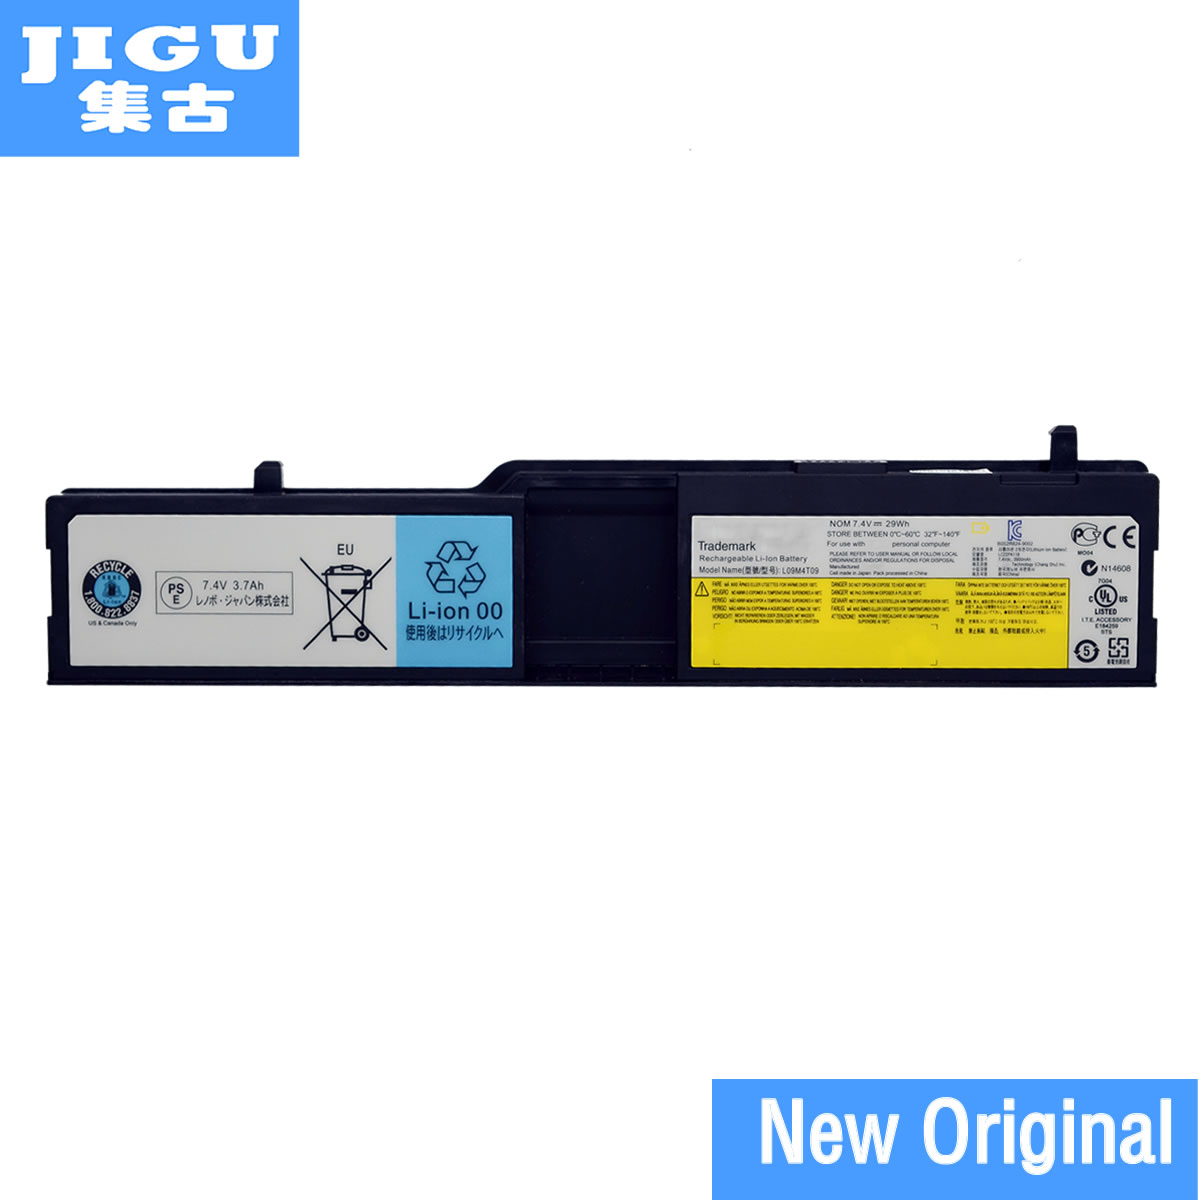 JIGU L09M4T09 L09M8T09 L09S4T09 L09S8L09 L09S8T09 Original laptop Battery For Lenovo for IdeaPad S10-3T 4CELLS 7.4V 29WH